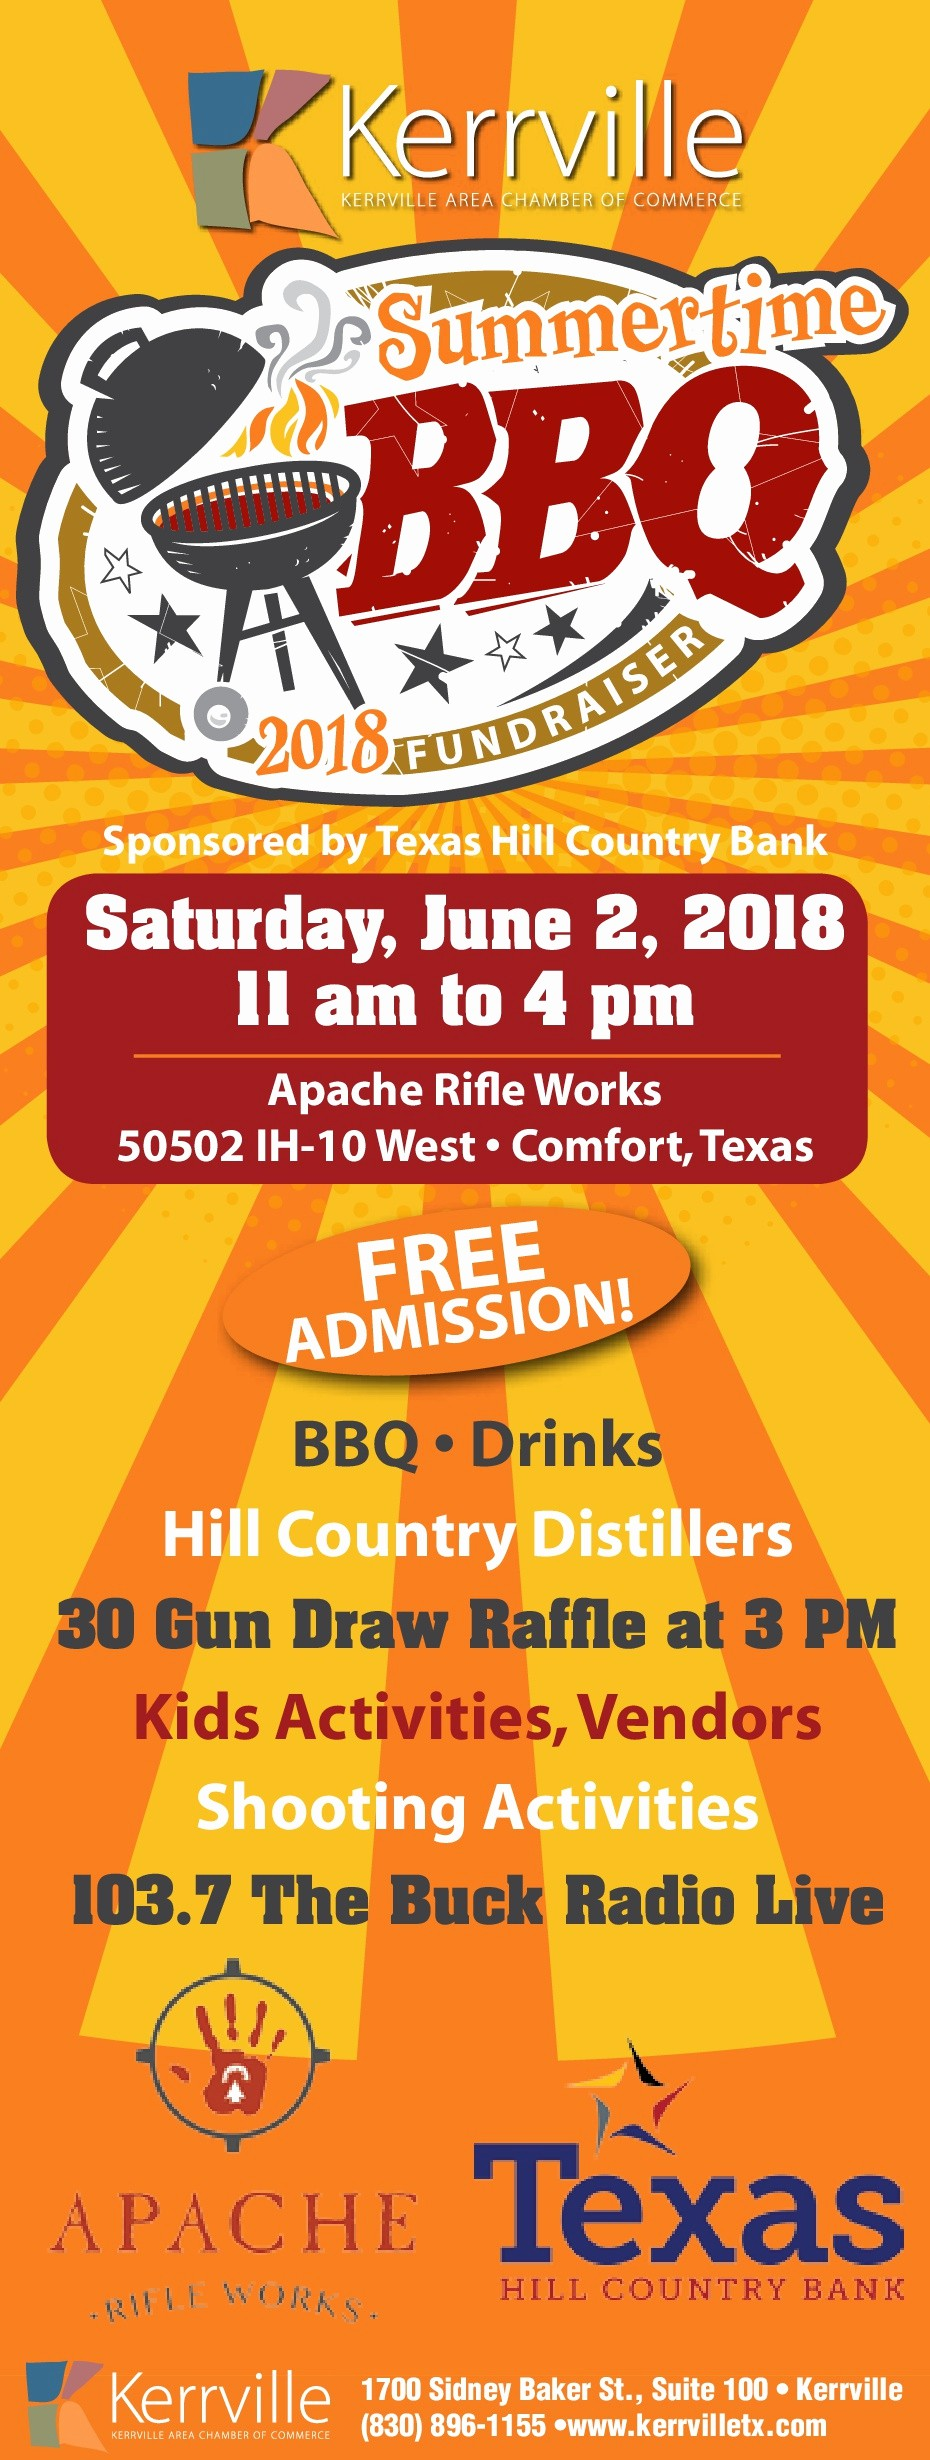 Bbq Fundraiser Flyer Templates Free Inspirational Summertime Bbq Fundraiser • Kerrville area Chamber Of Merce